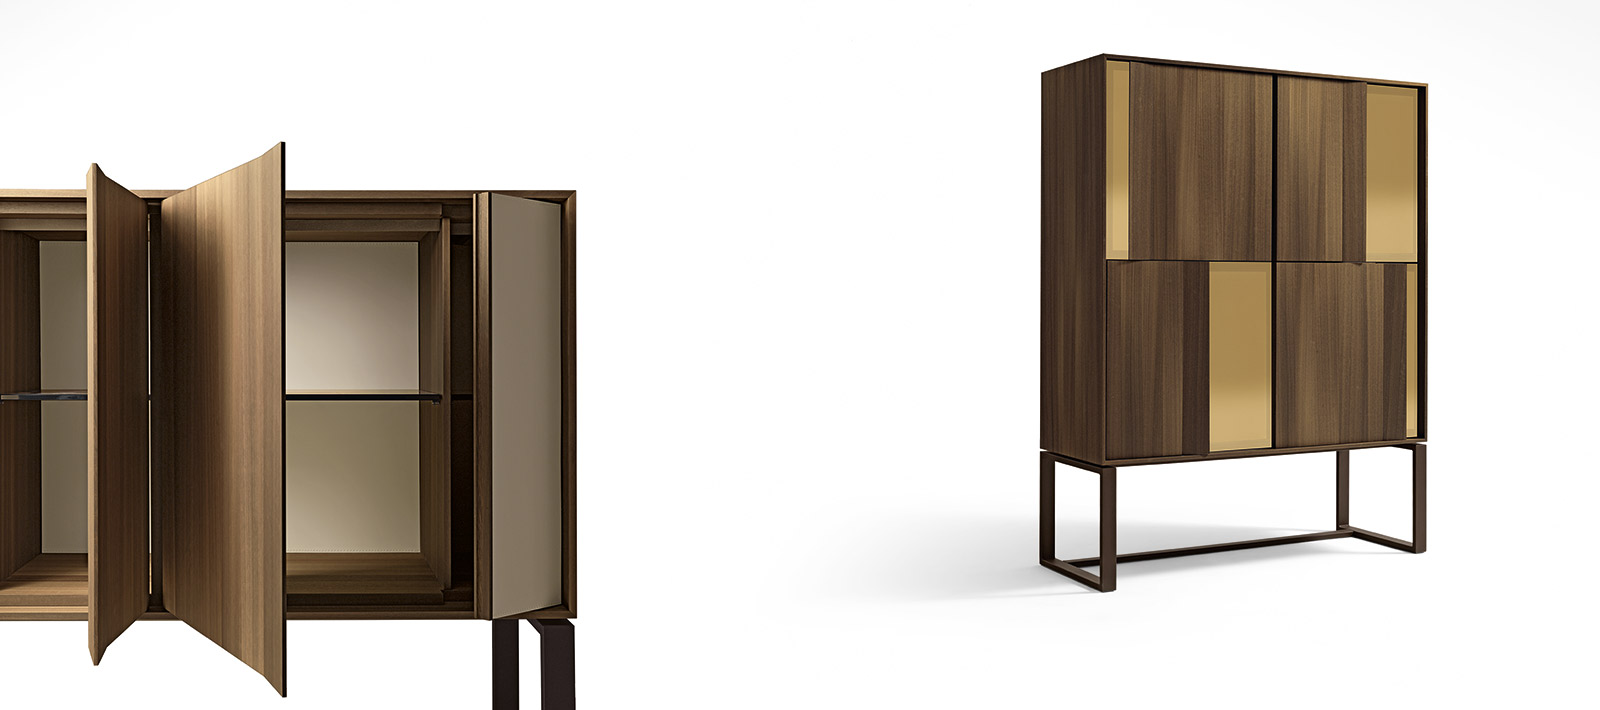 The building's exterior was inspired by  Giorgetti's Origami cabinet .